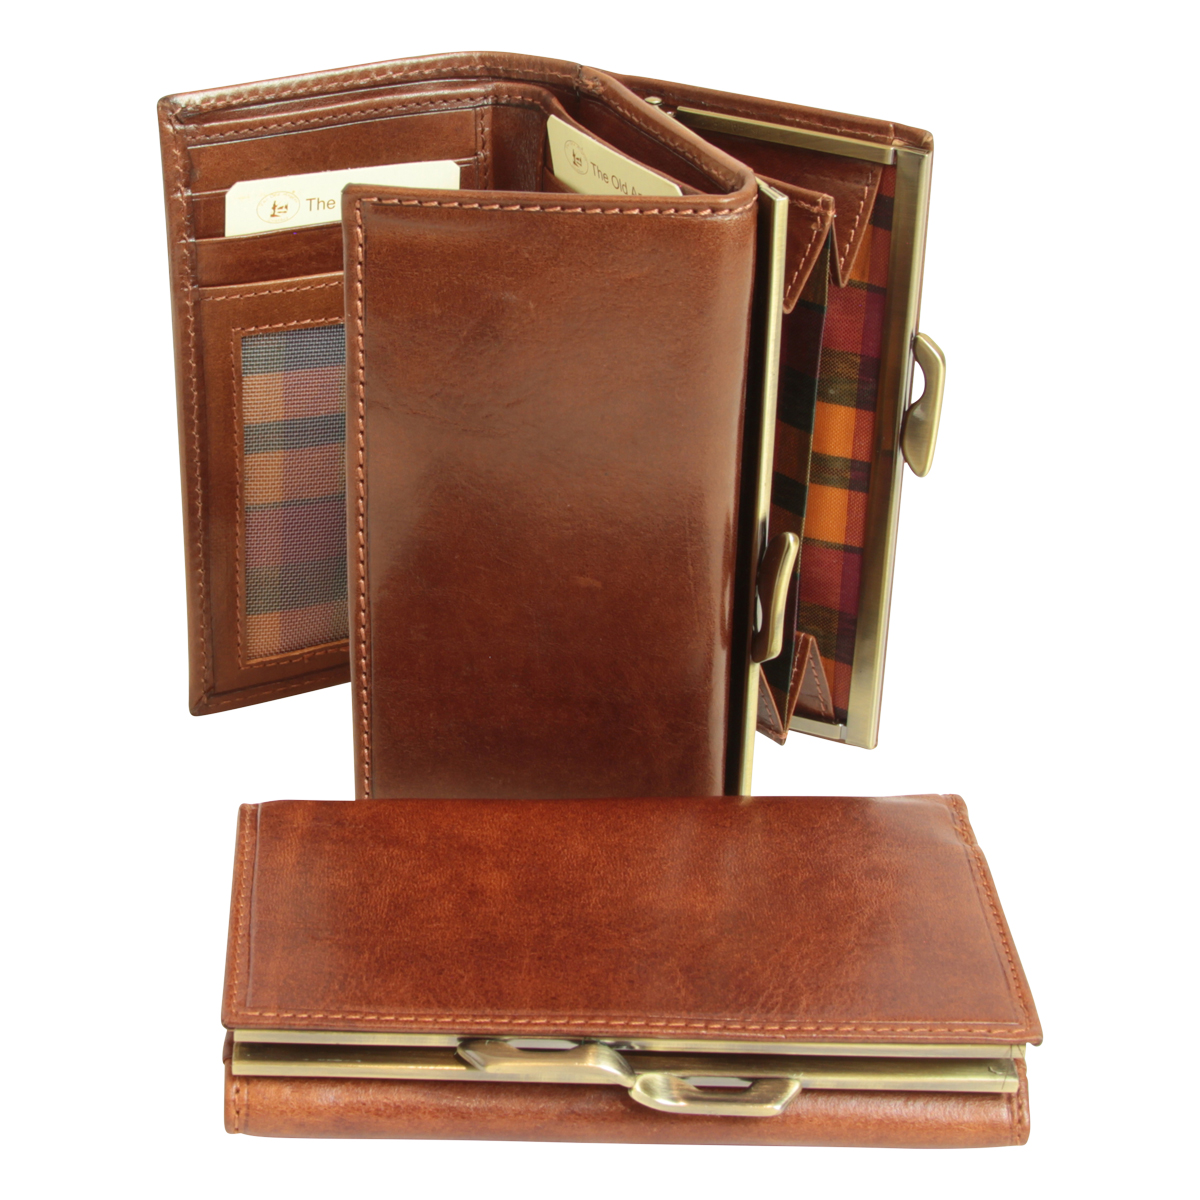 Leather Trifold Wallet with snap closure - Brown | 507205MA UK | Old Angler Firenze